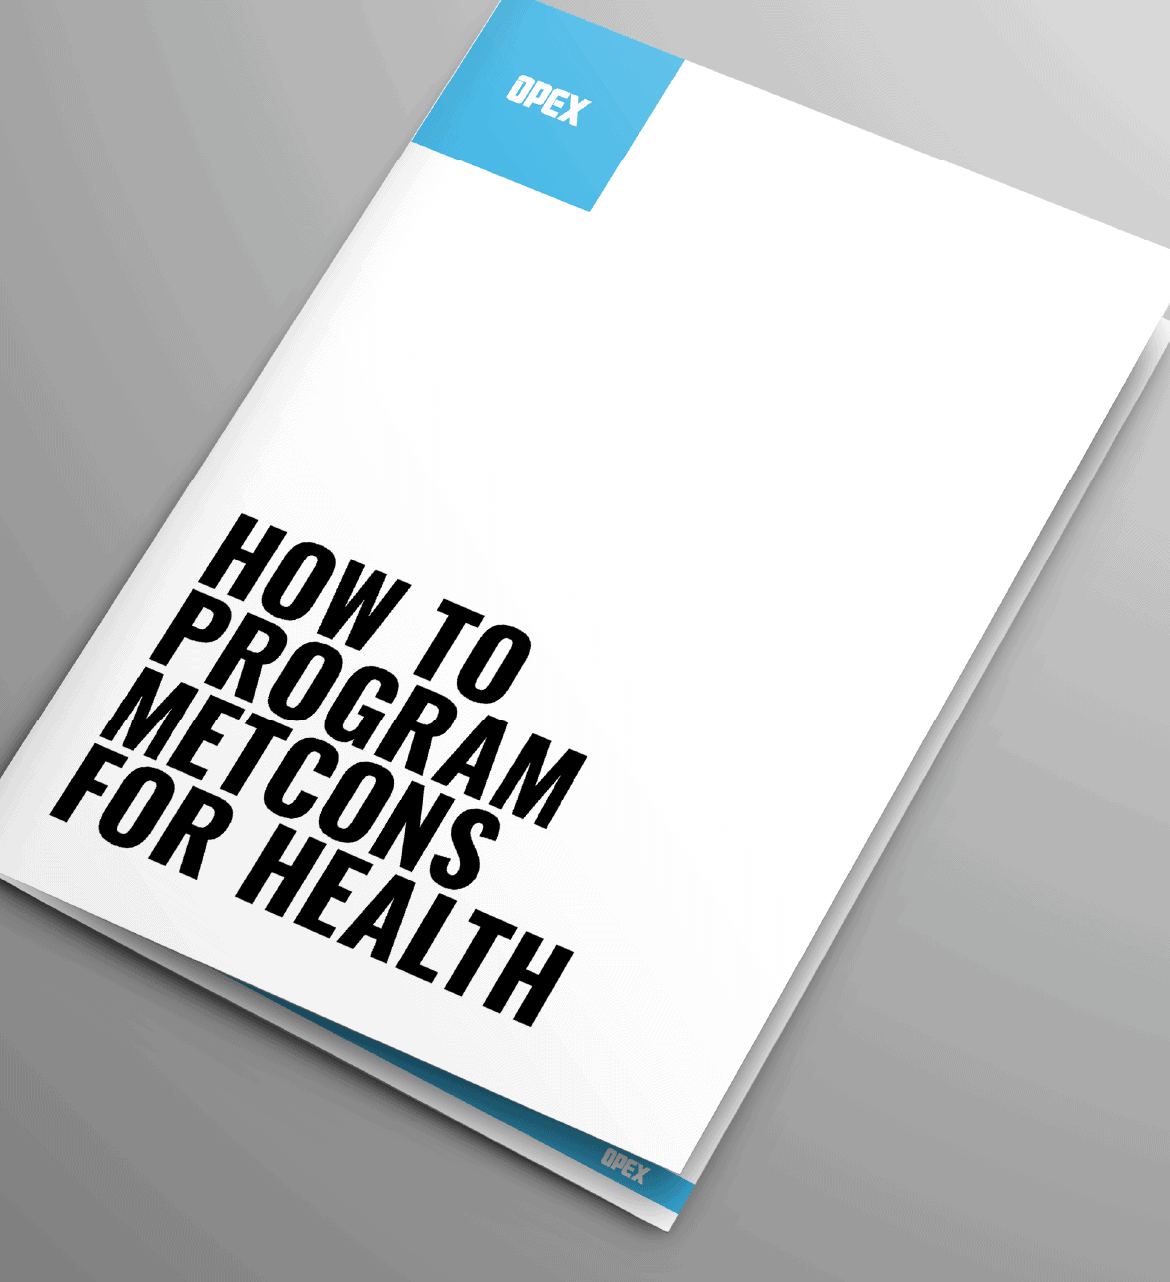 How to Program Metcons for Health